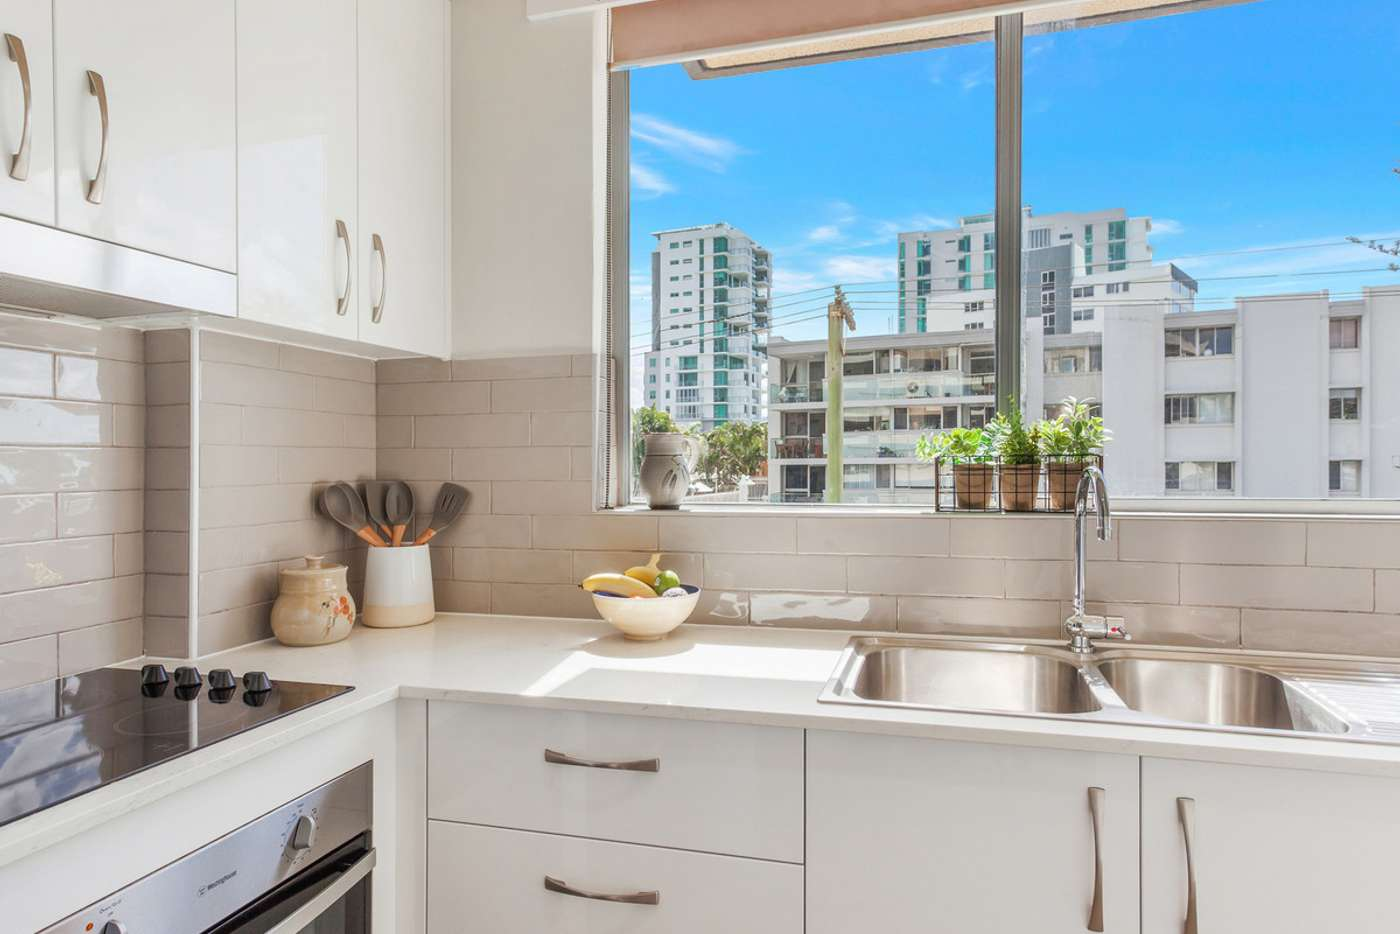 Fifth view of Homely apartment listing, 4/82 The Esplanade, Burleigh Heads QLD 4220